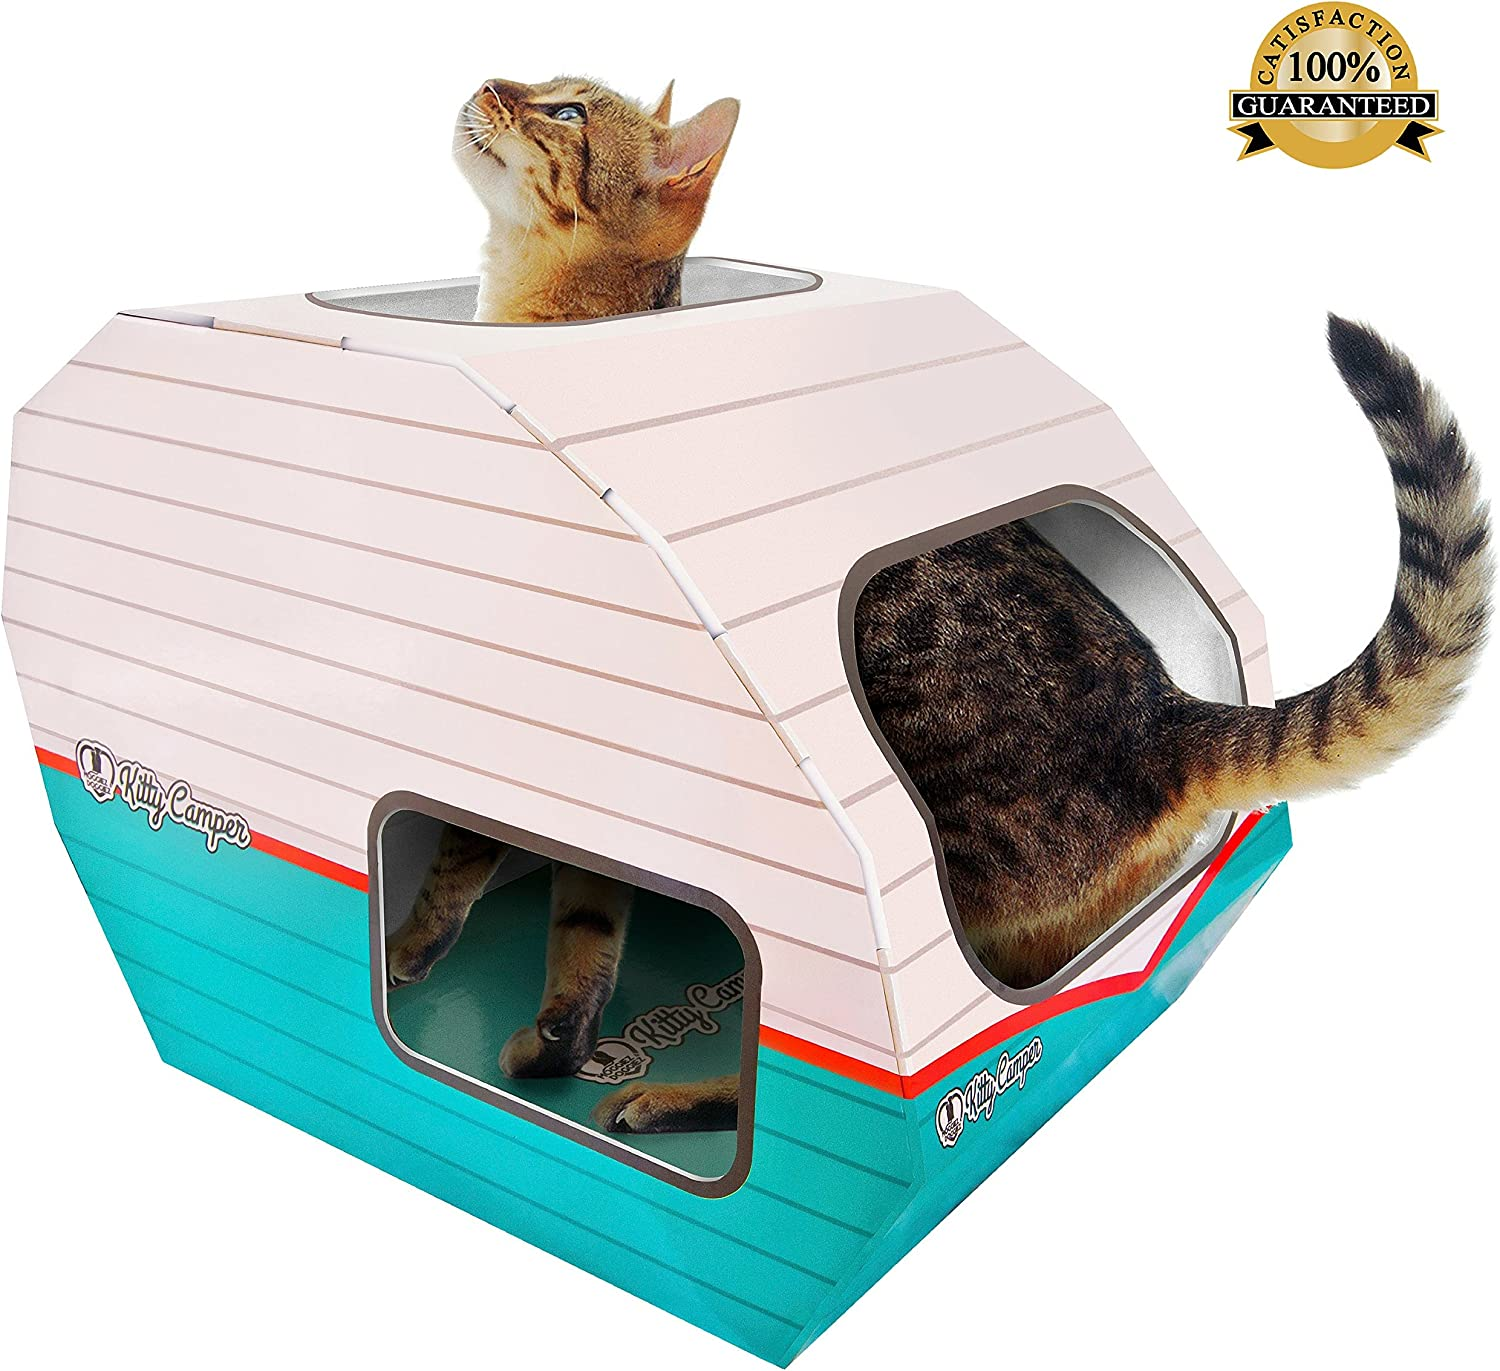 Coolest Cat Playhouse For Cats By Kitty Camper Stylish Cardboard Toys Designed To Entertain Use As A Scratcher Lounge Toy Or Bed Kittens Also Love The Condo Towers